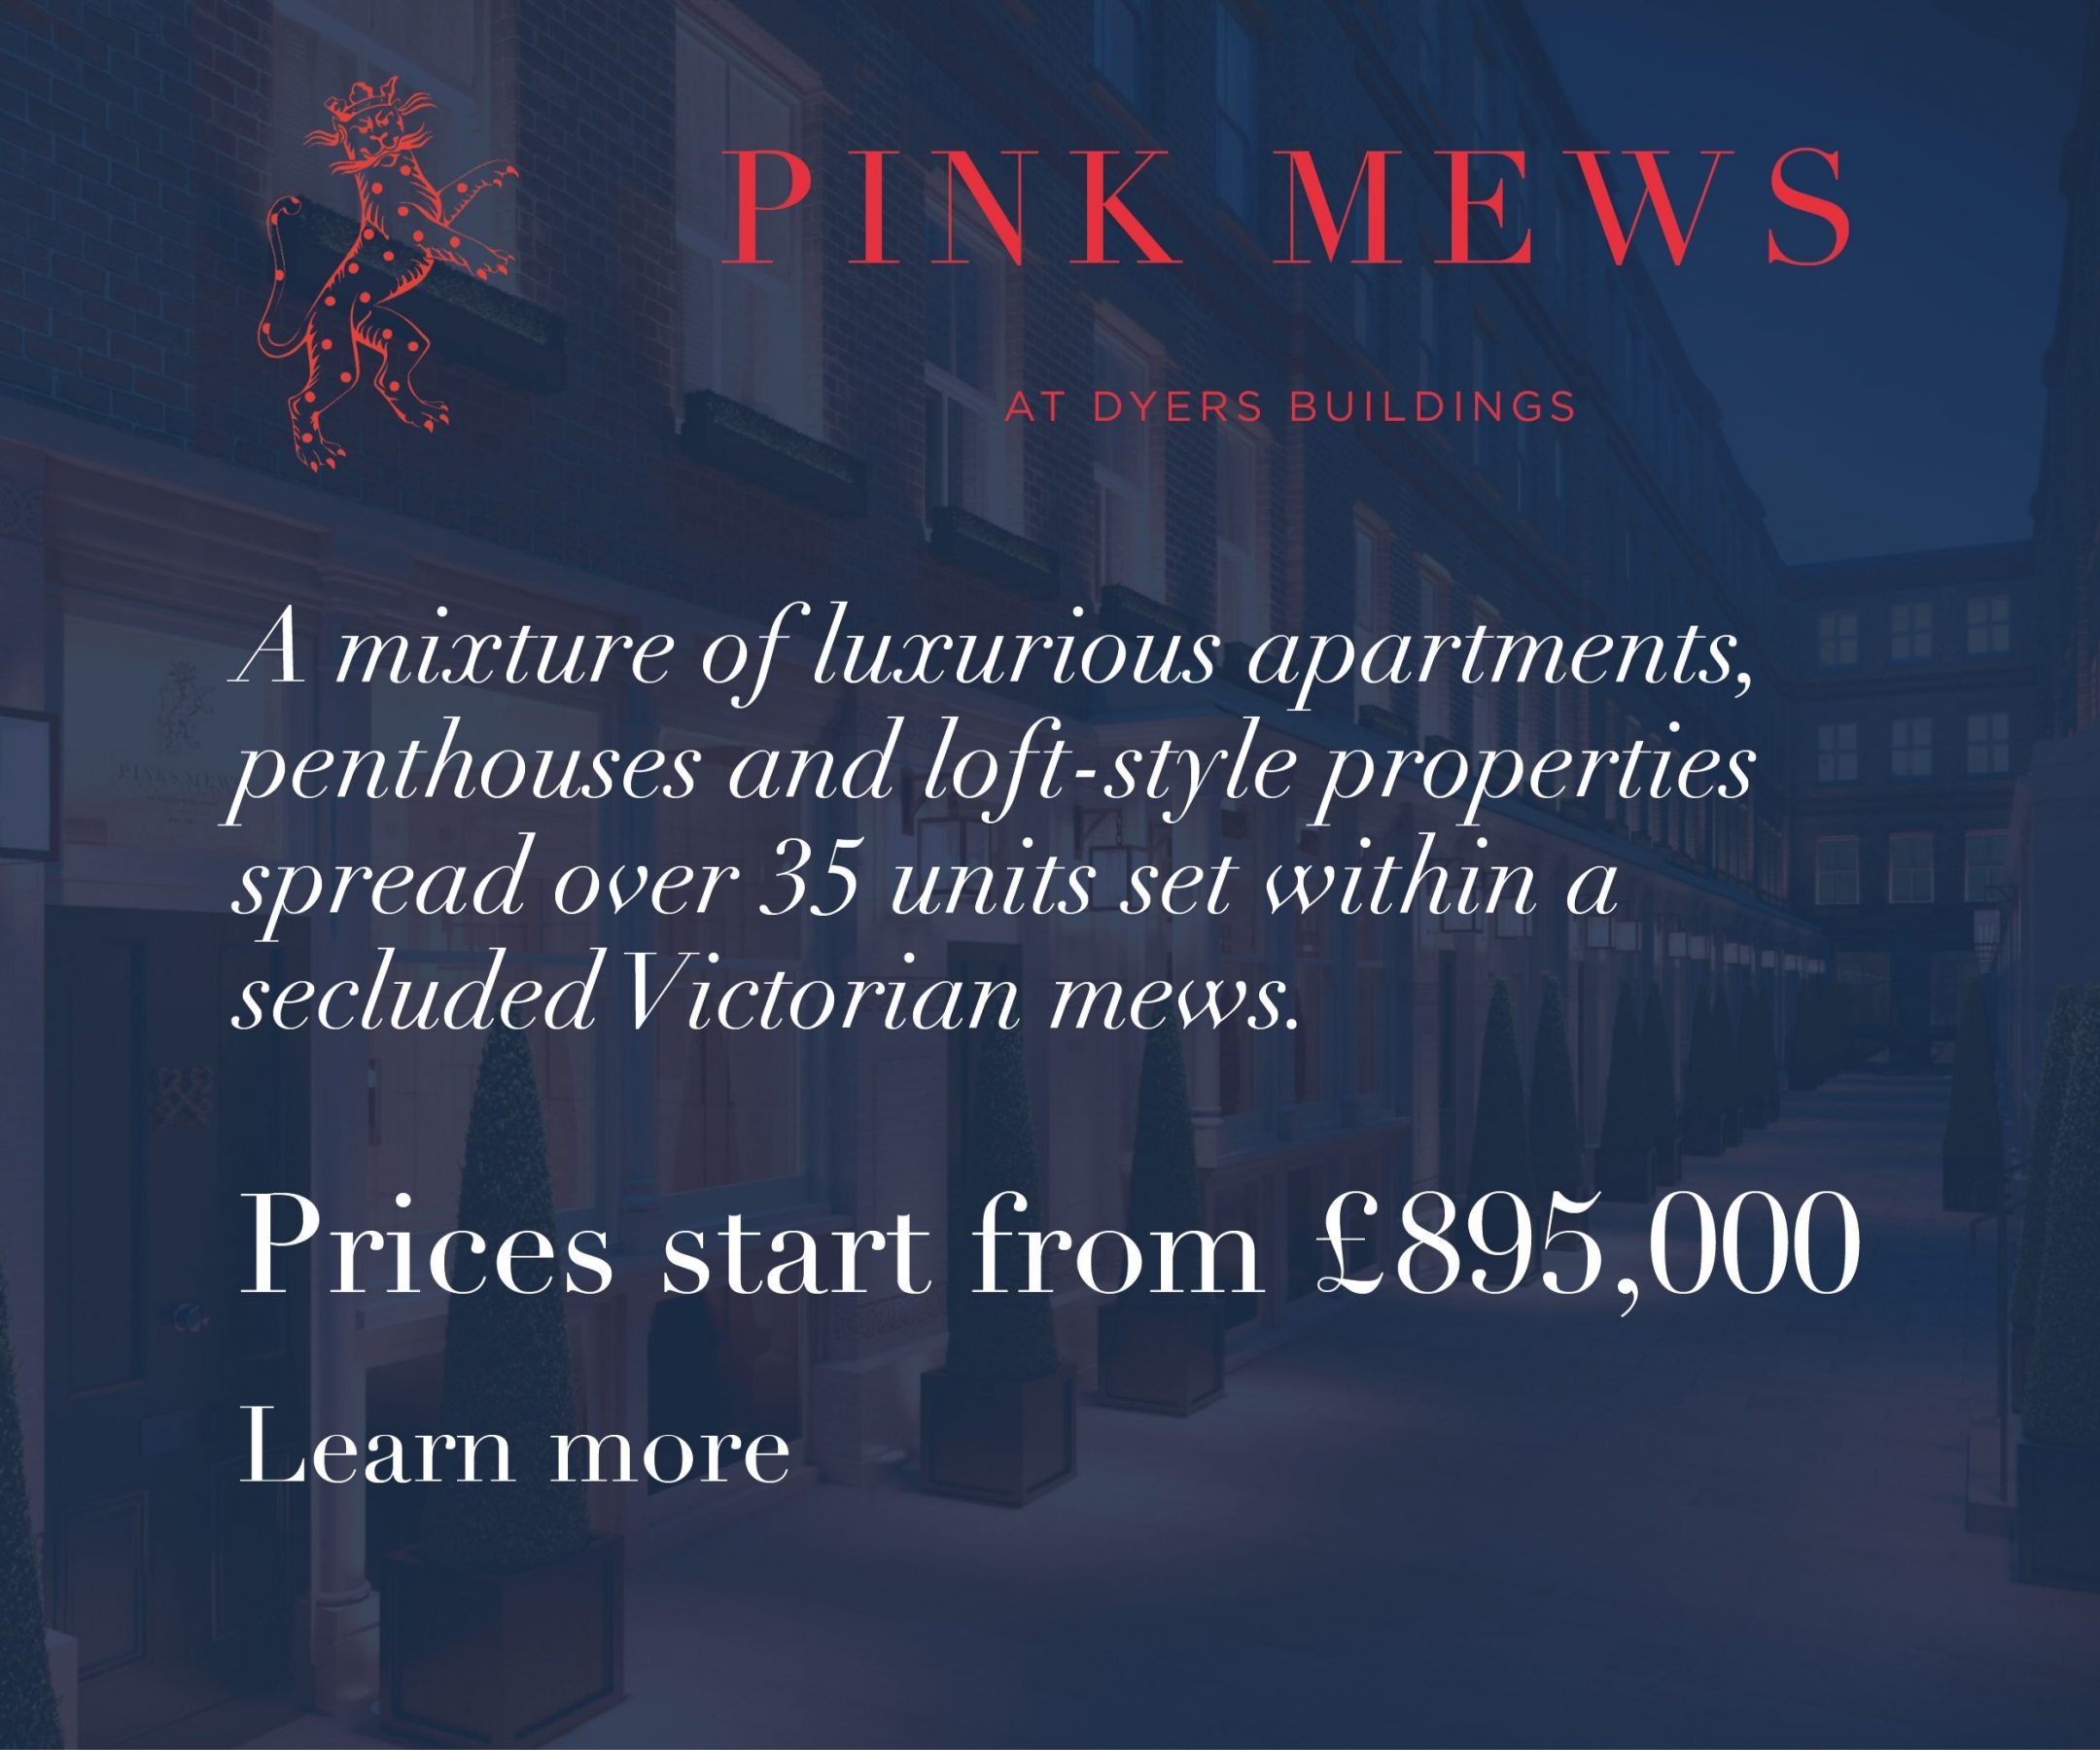 Ad placement for Pinks Mews